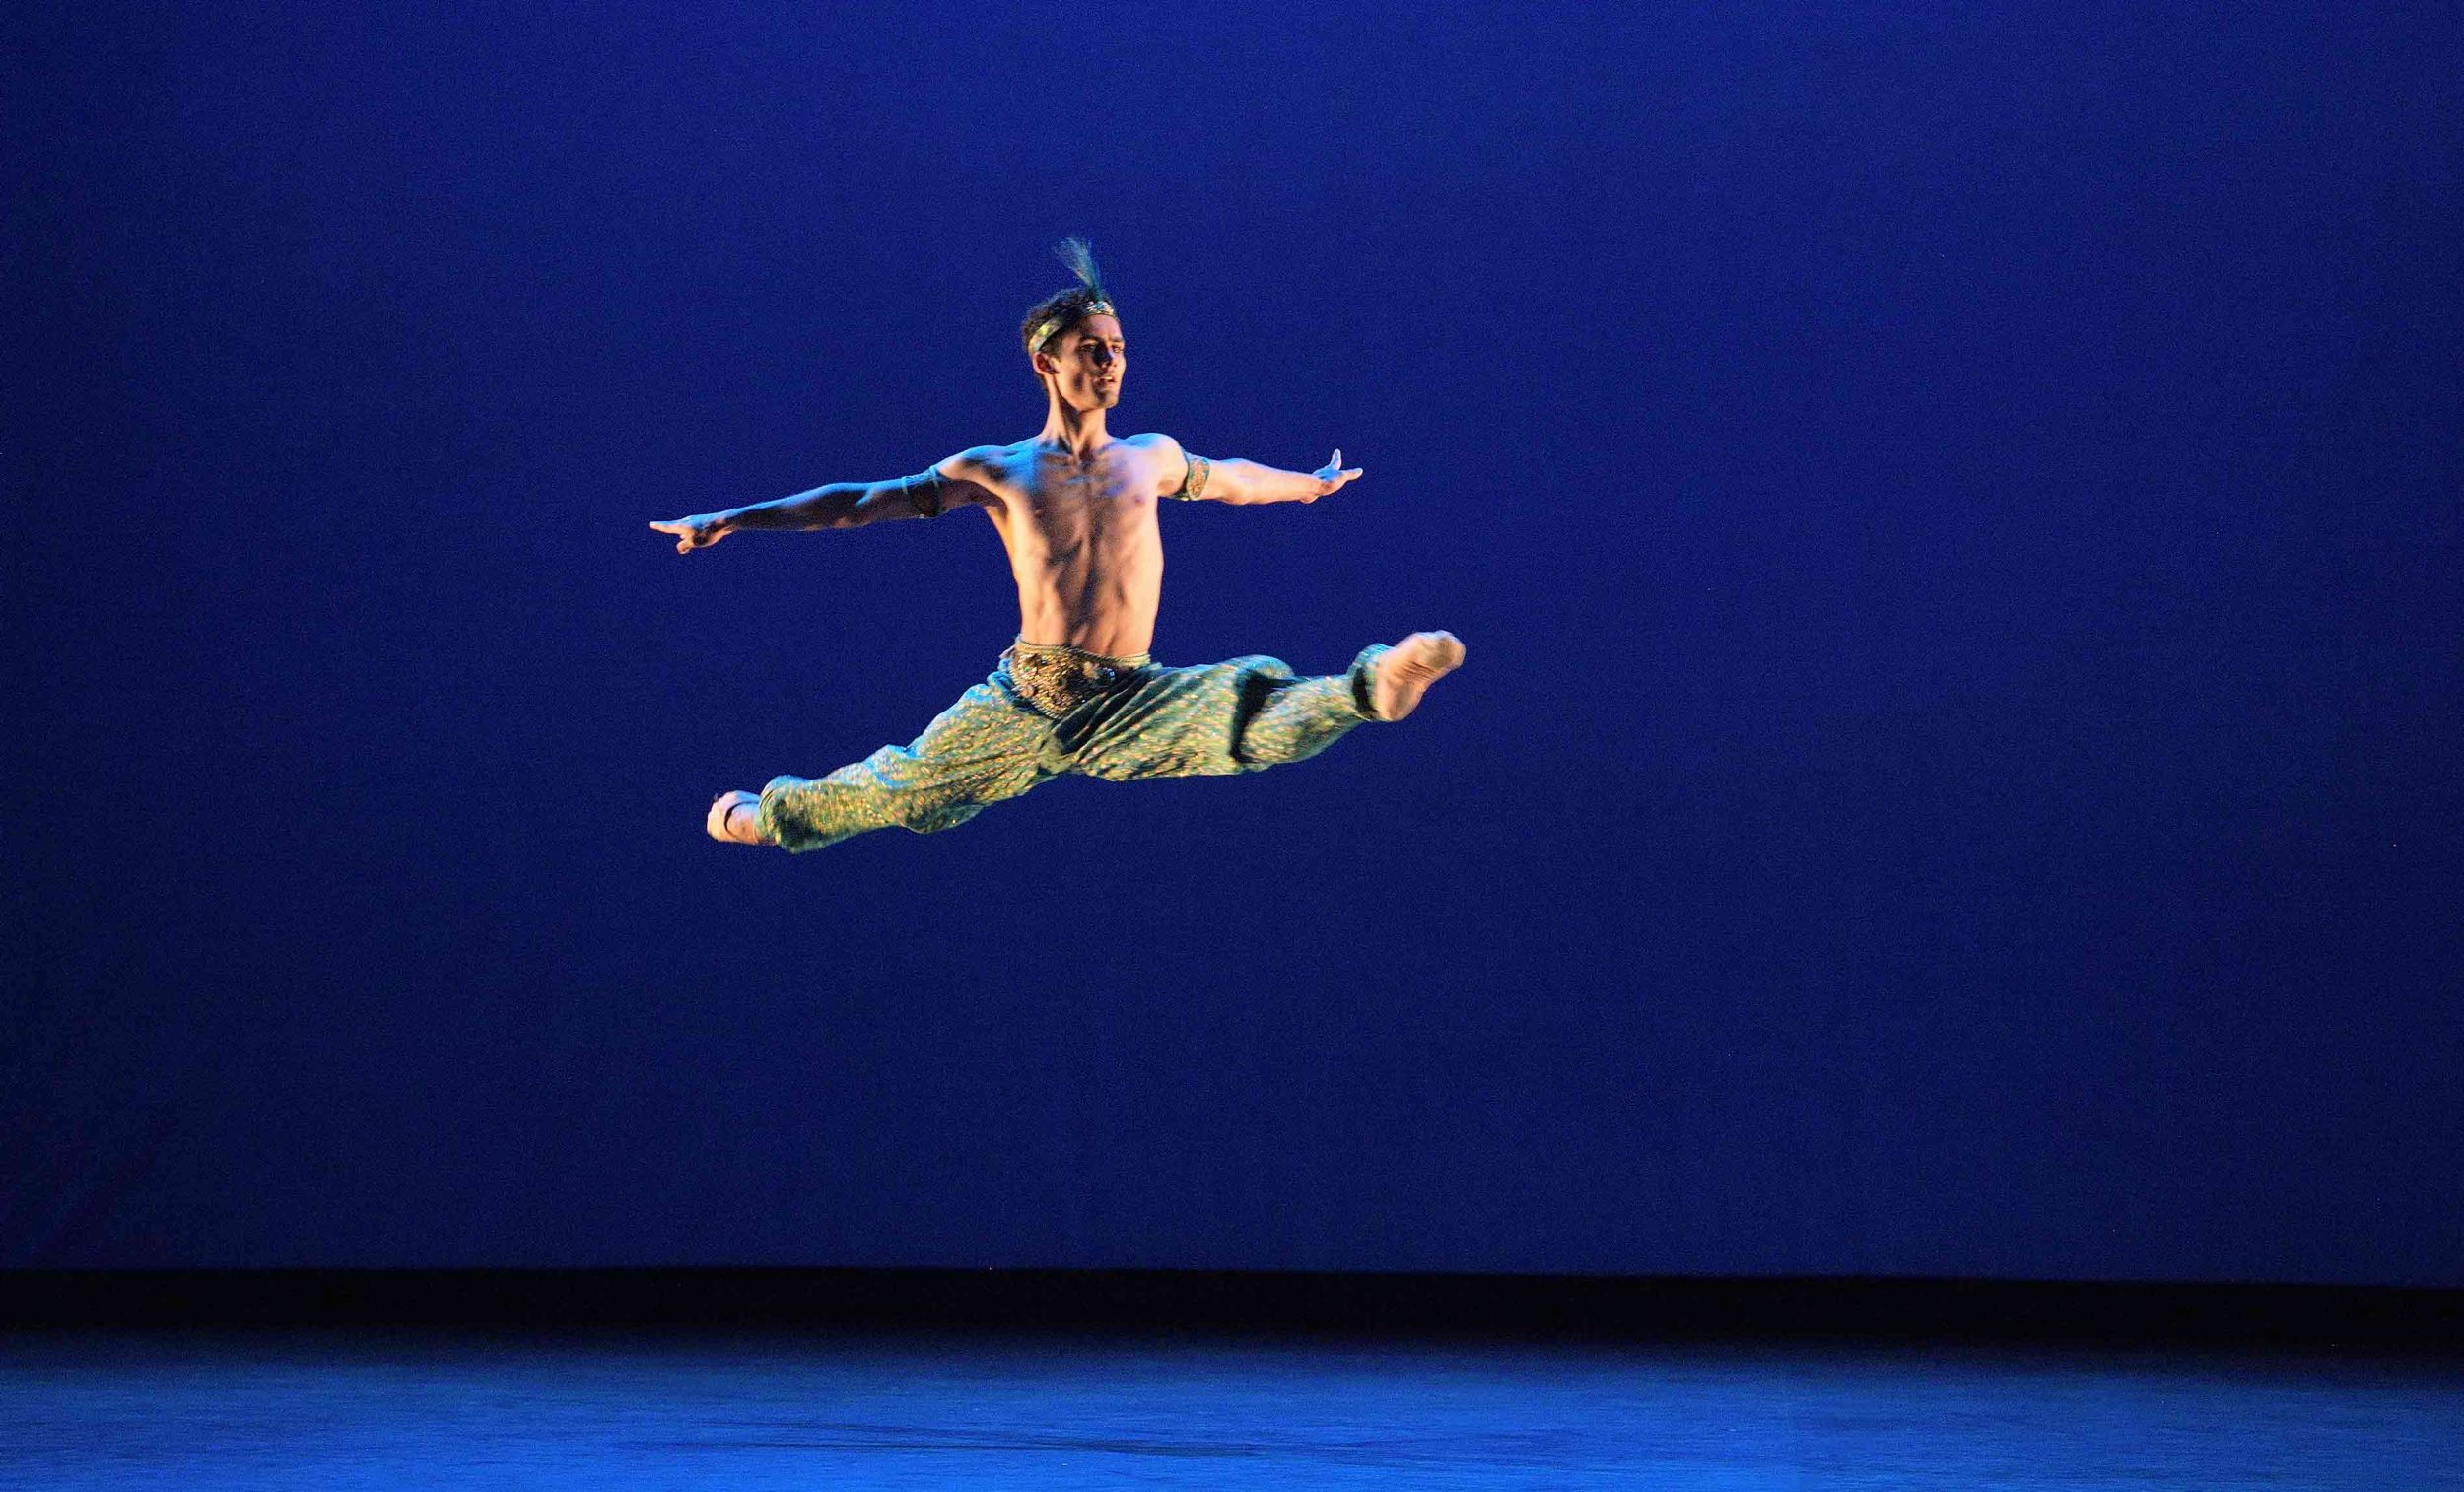 Daniel-McCormick-performing-Le-Corsaire-©-Laurent-Liotardo-(4)